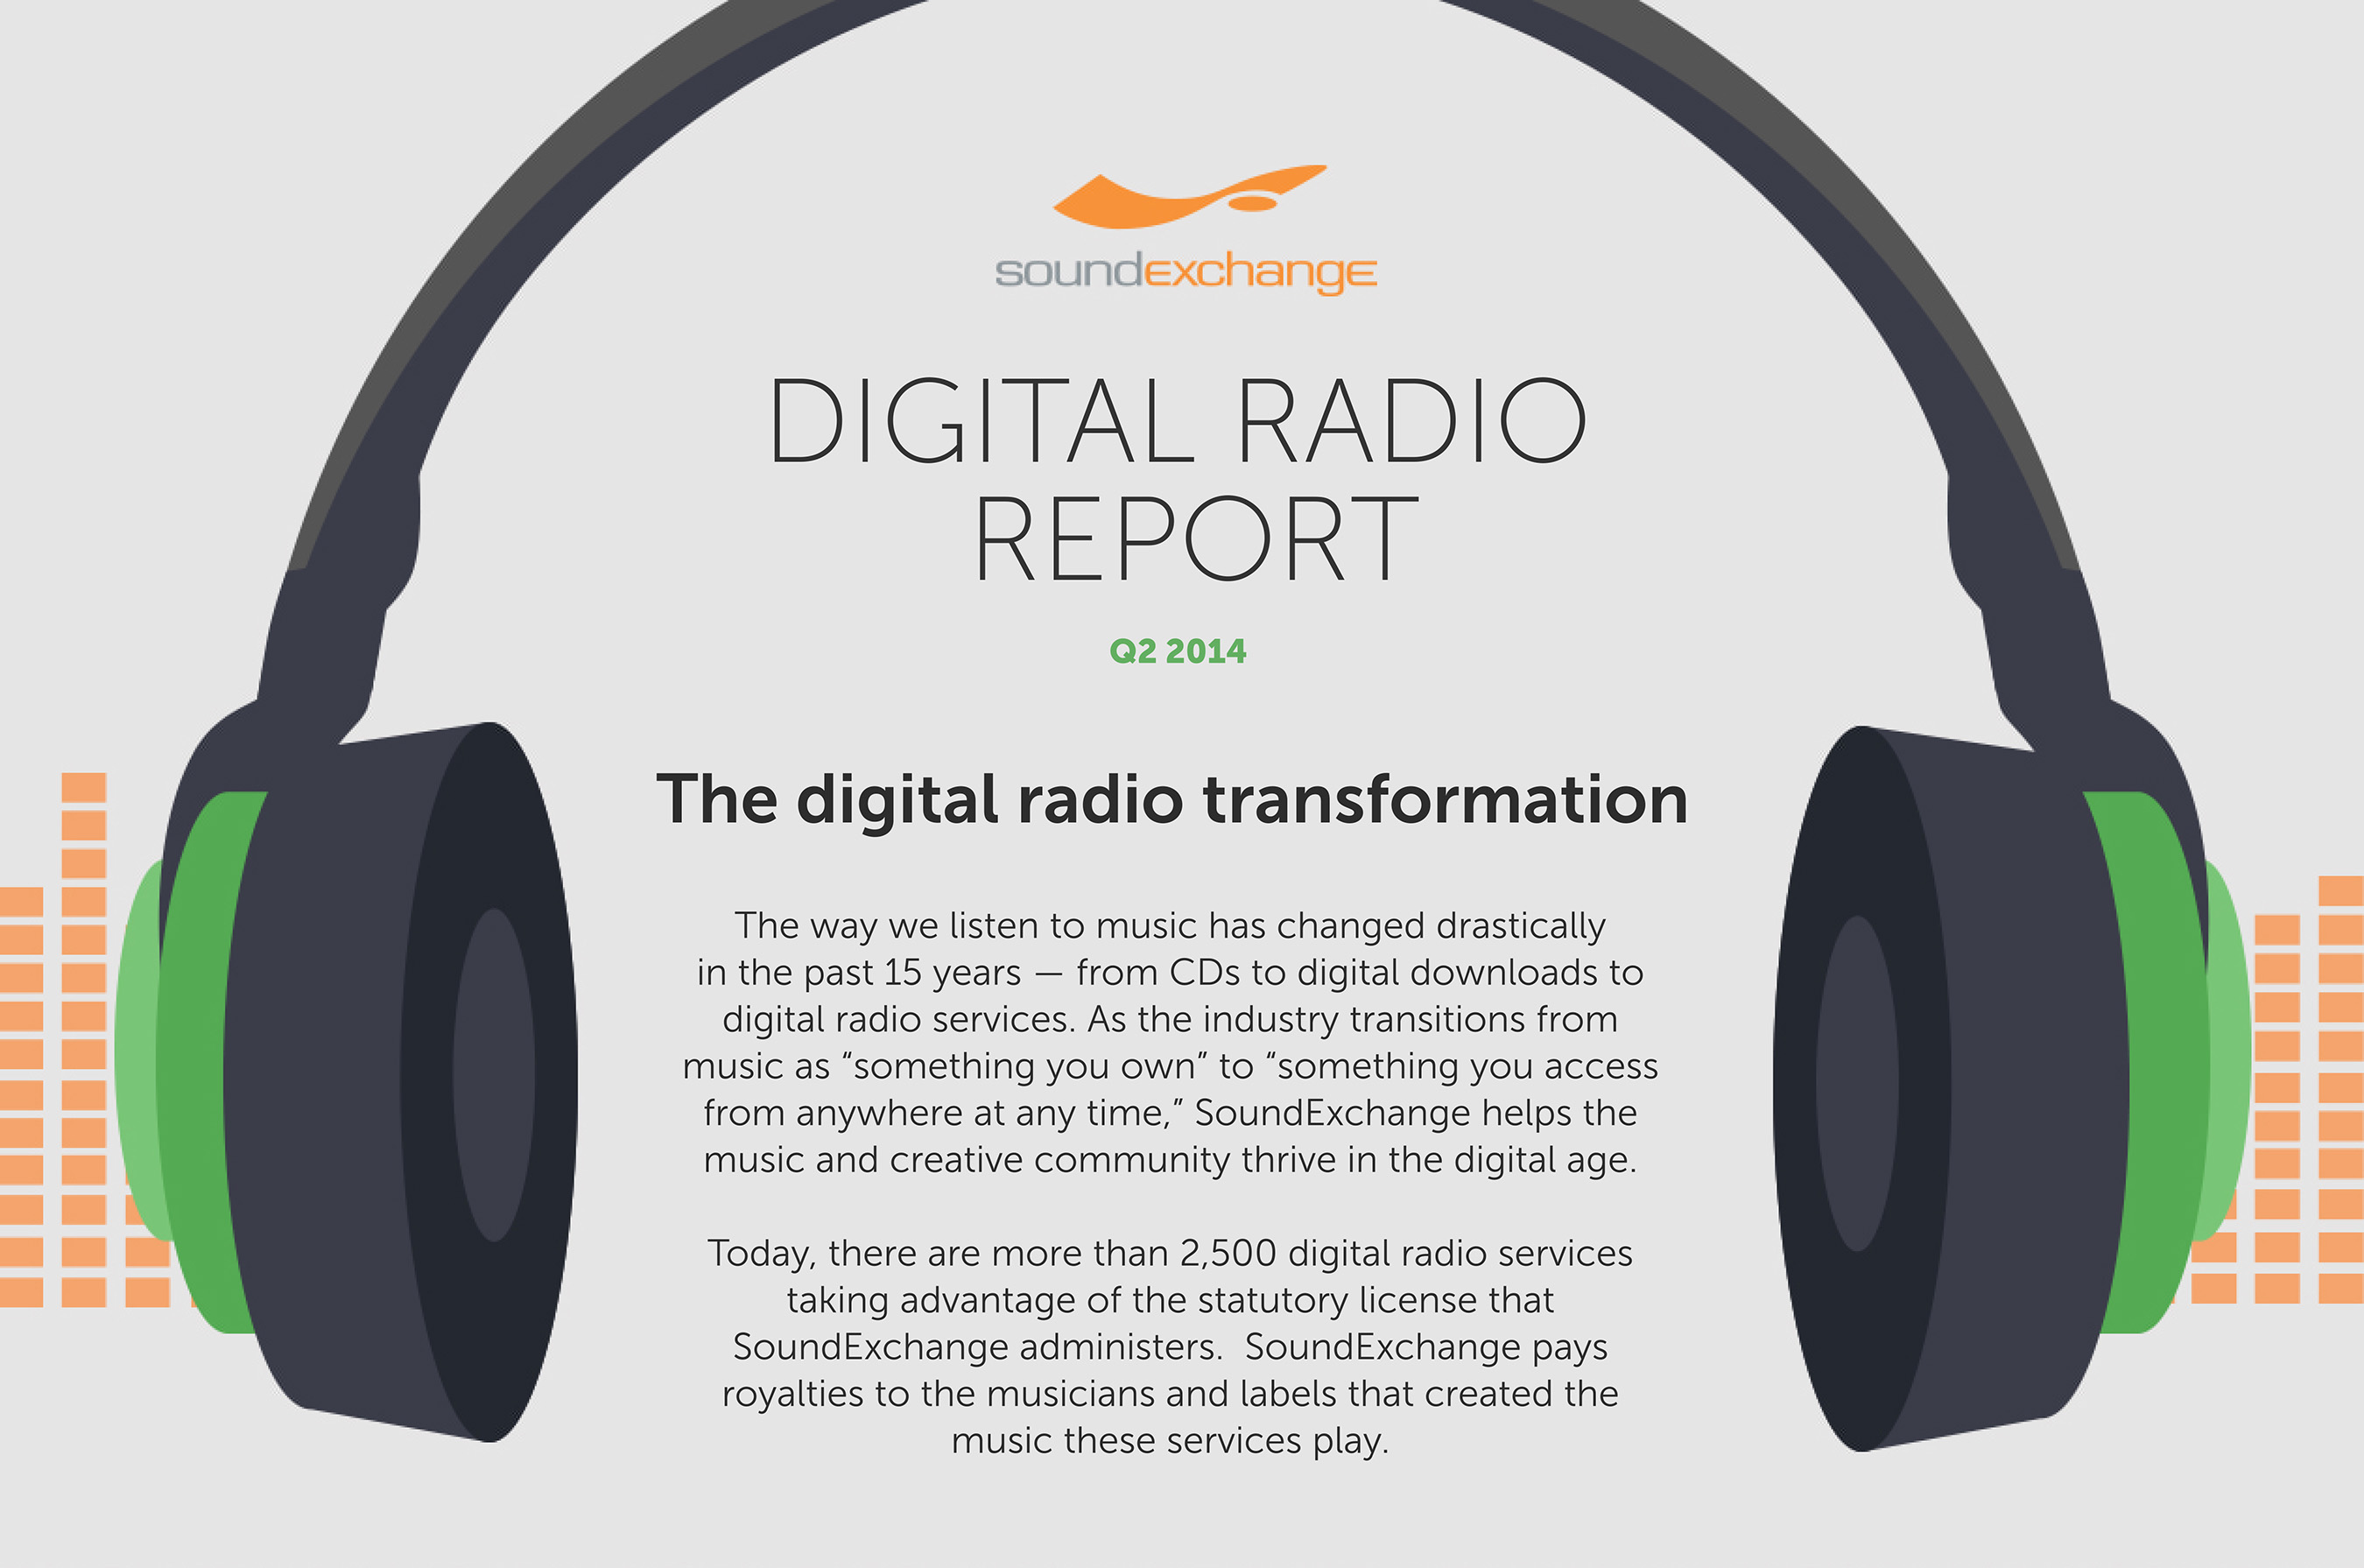 SoundExchange Q2 Digital Radio Report Highlights Digital Radio Transformation